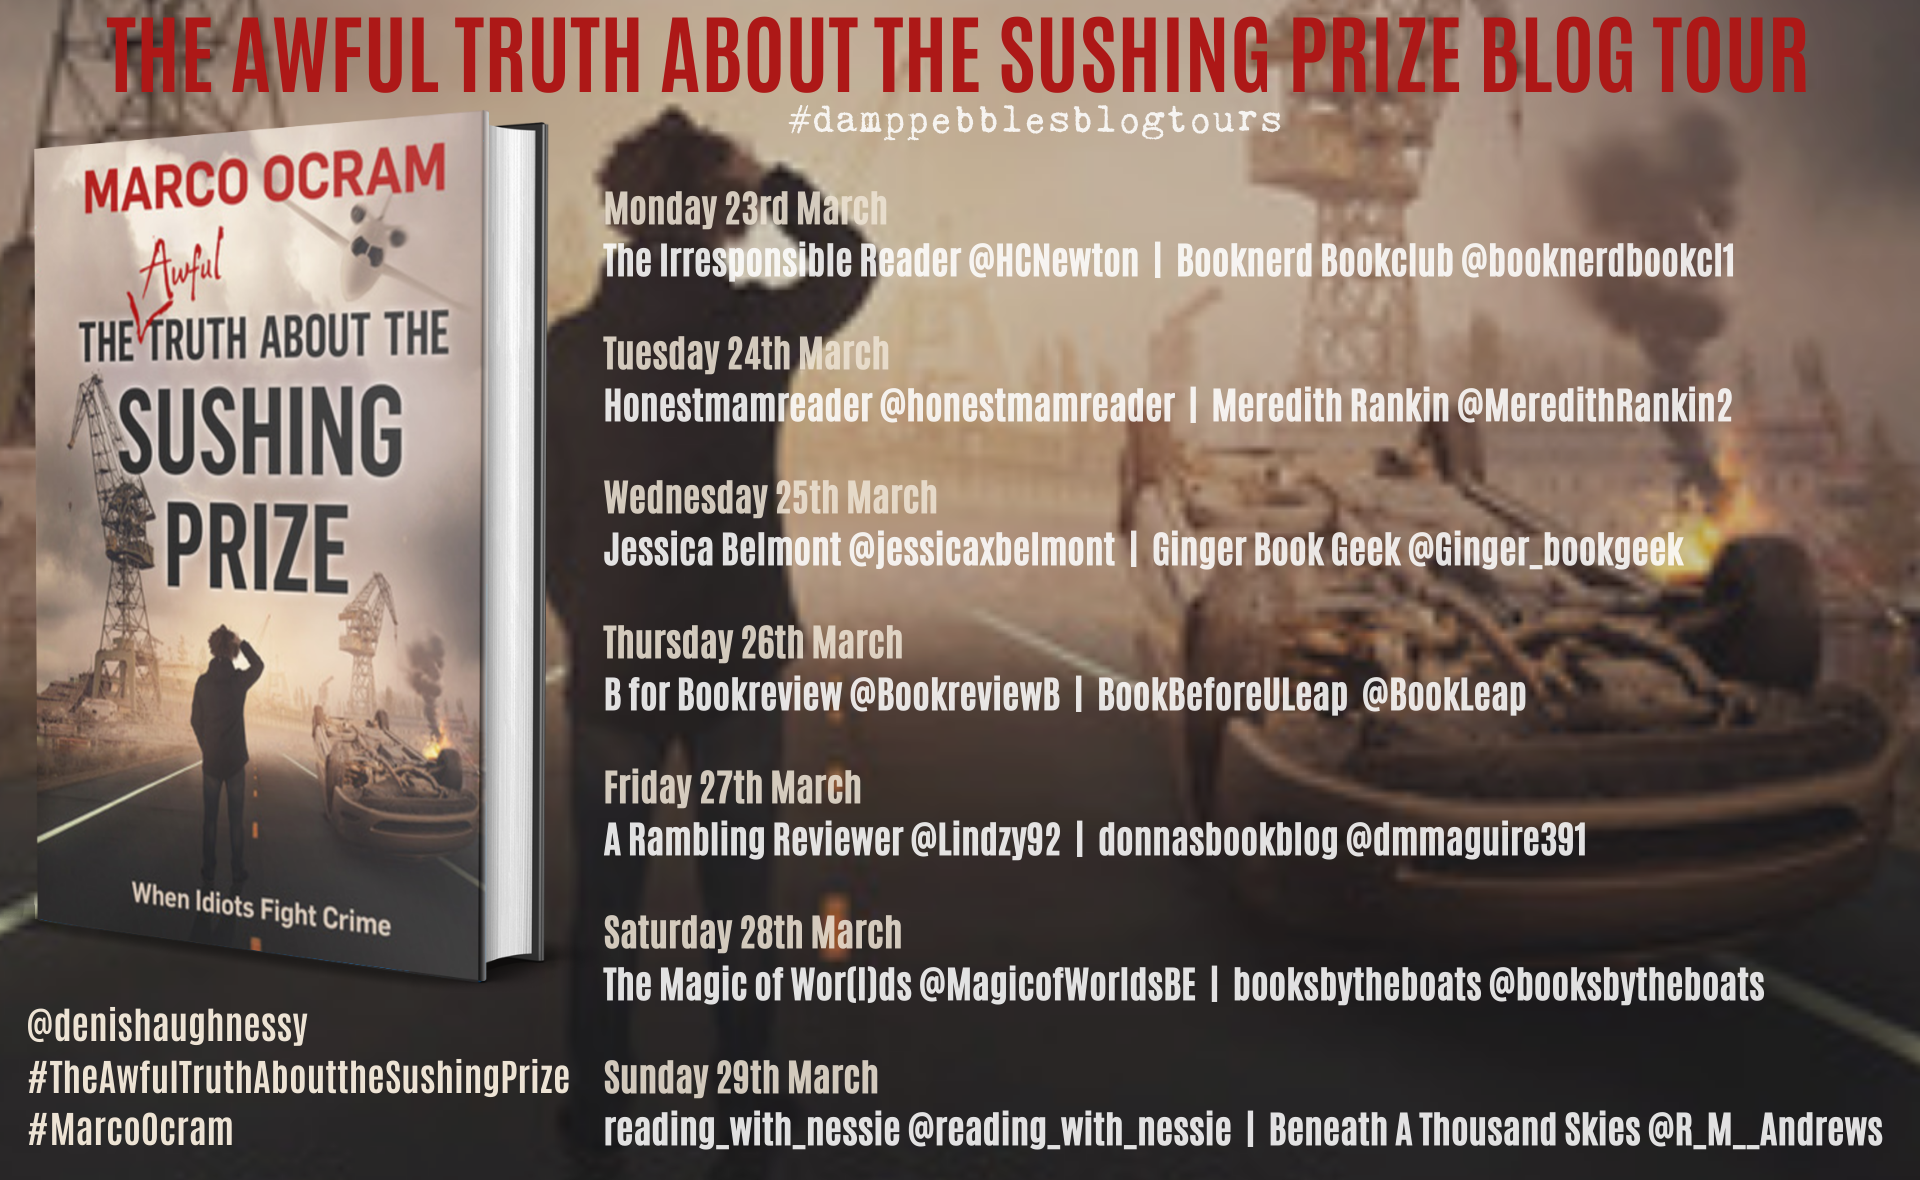 The Awful Truth About the Sushing Prize banner